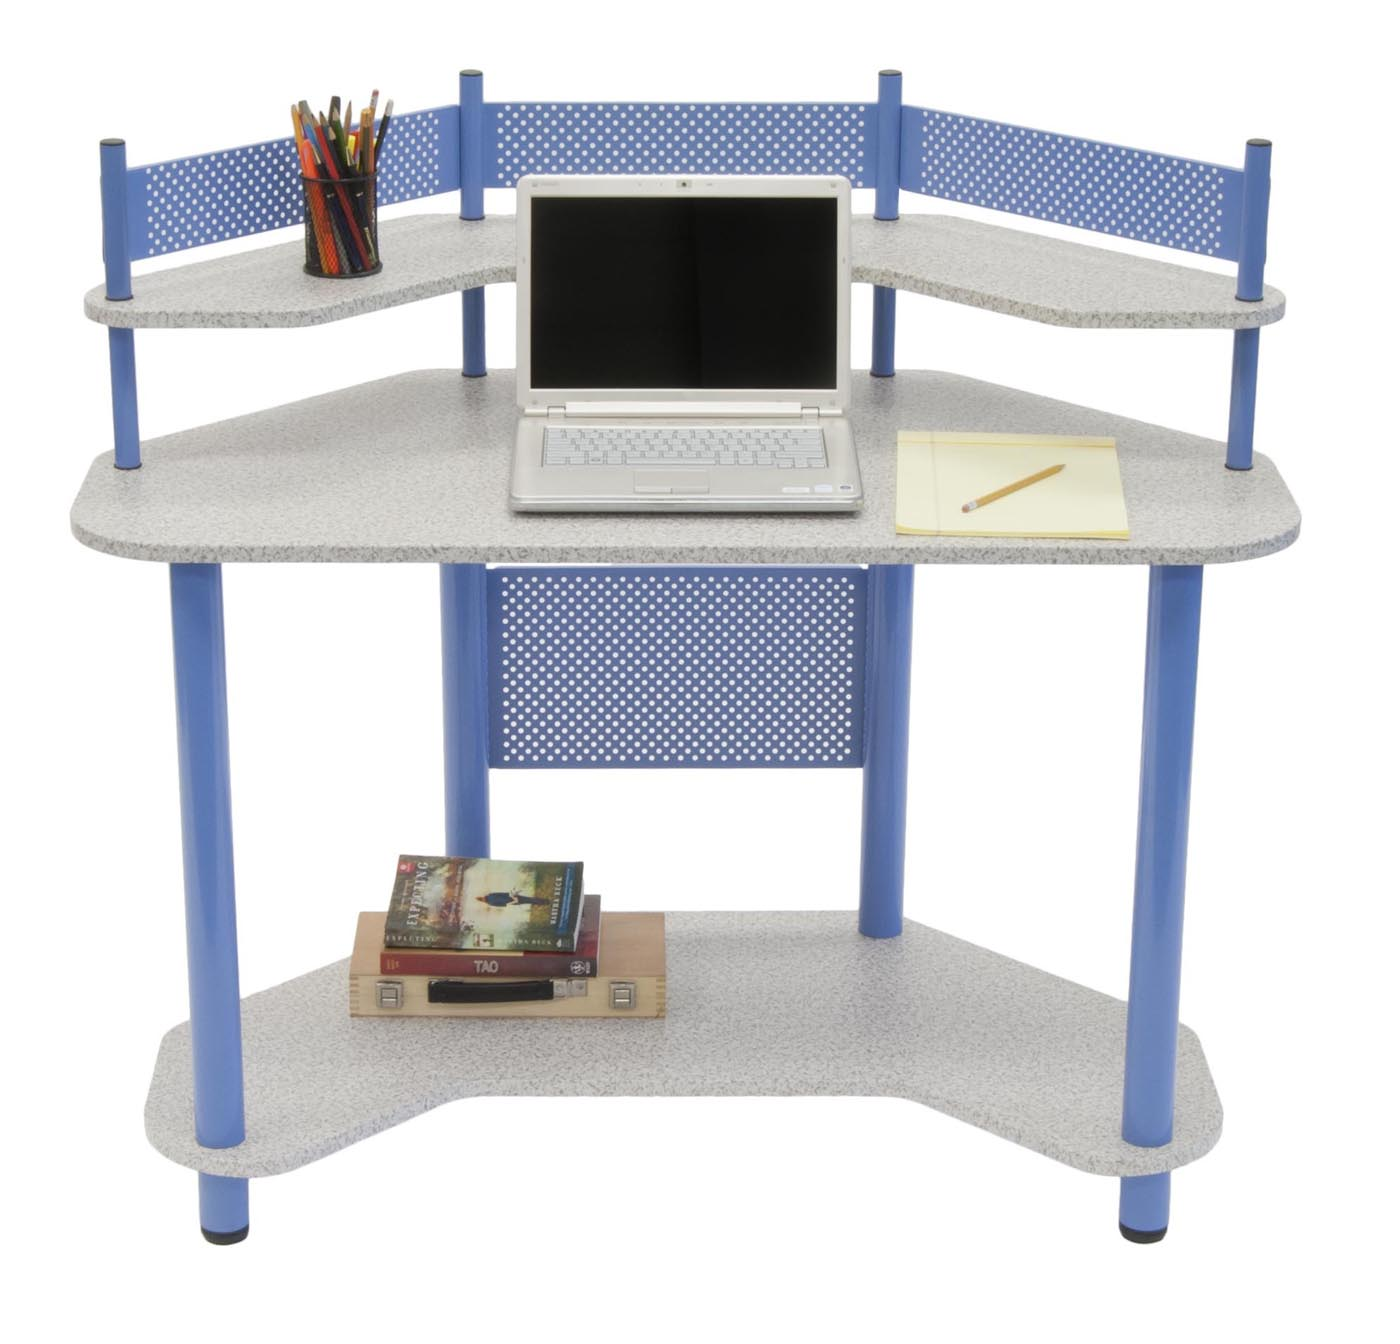 Corner Student Study Desk In Kids Desks. 4 Drawer Pulls. Computer Desk With Storage. Ikea 3 Drawer Filing Cabinet. Gloss Desk White. Small Computer Desks. Stainless Steel Food Prep Table. White Shiny Desk. Coffee Table Lift Top